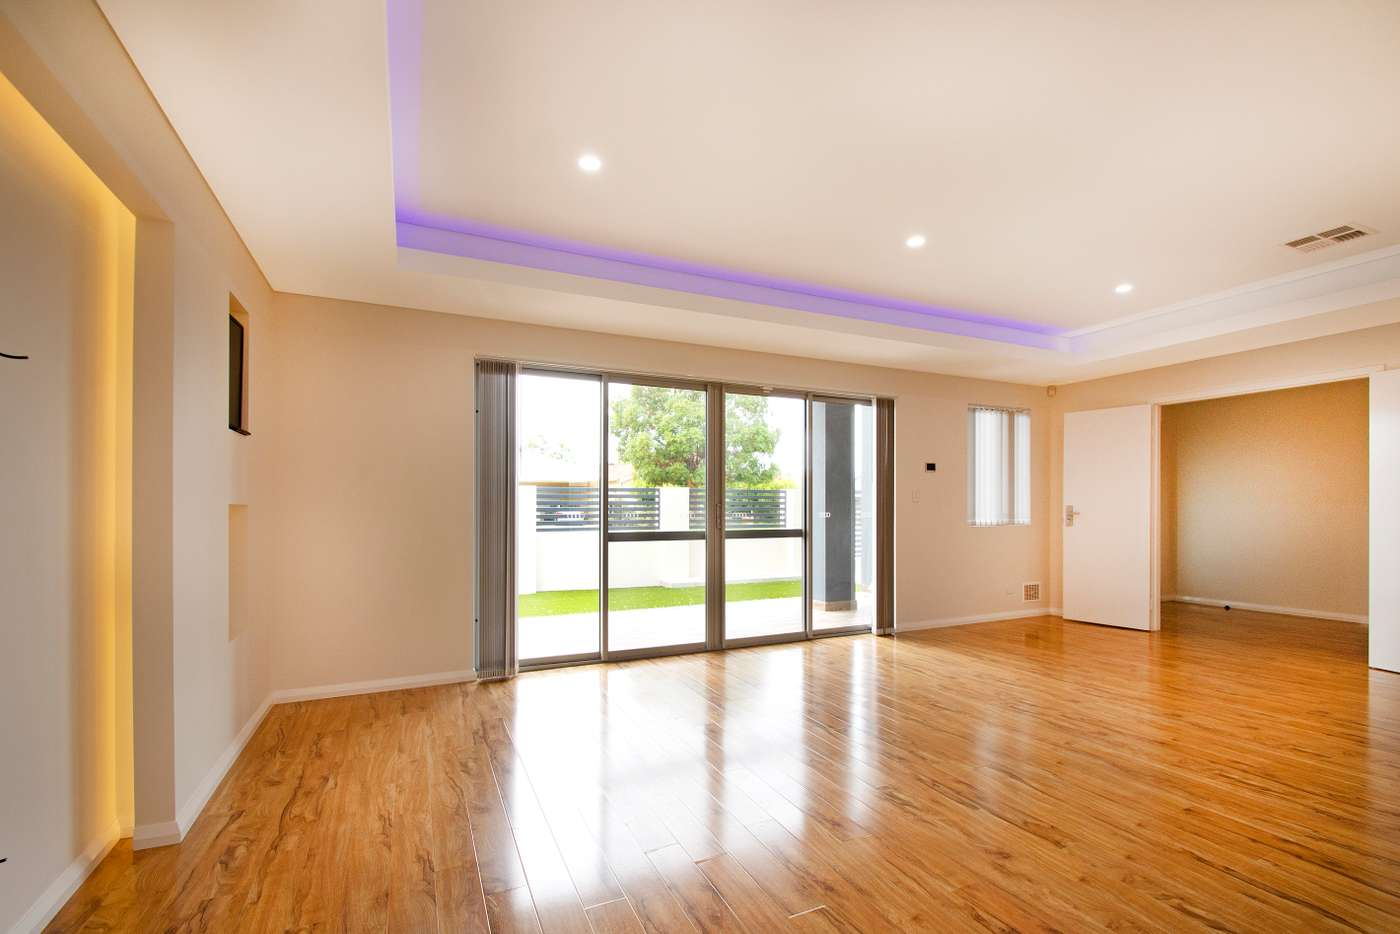 Seventh view of Homely house listing, A/14 Smith Street, Dianella WA 6059